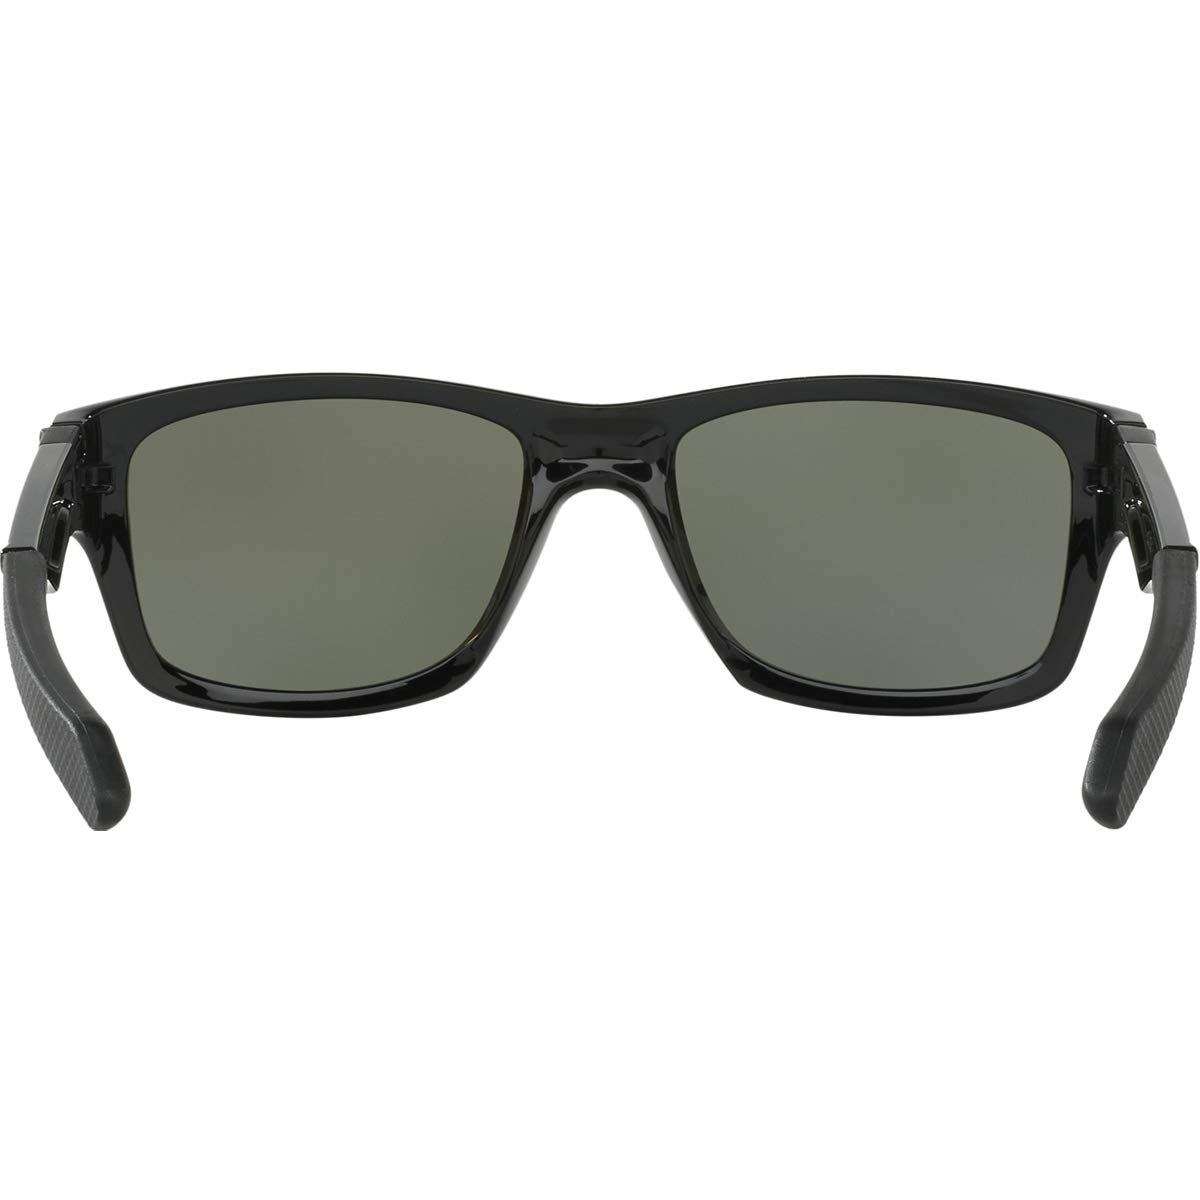 65424e4784 Amazon.com  Oakley Mens Sunglasses Black Matte Black - Non-Polarized -  56mm  Clothing